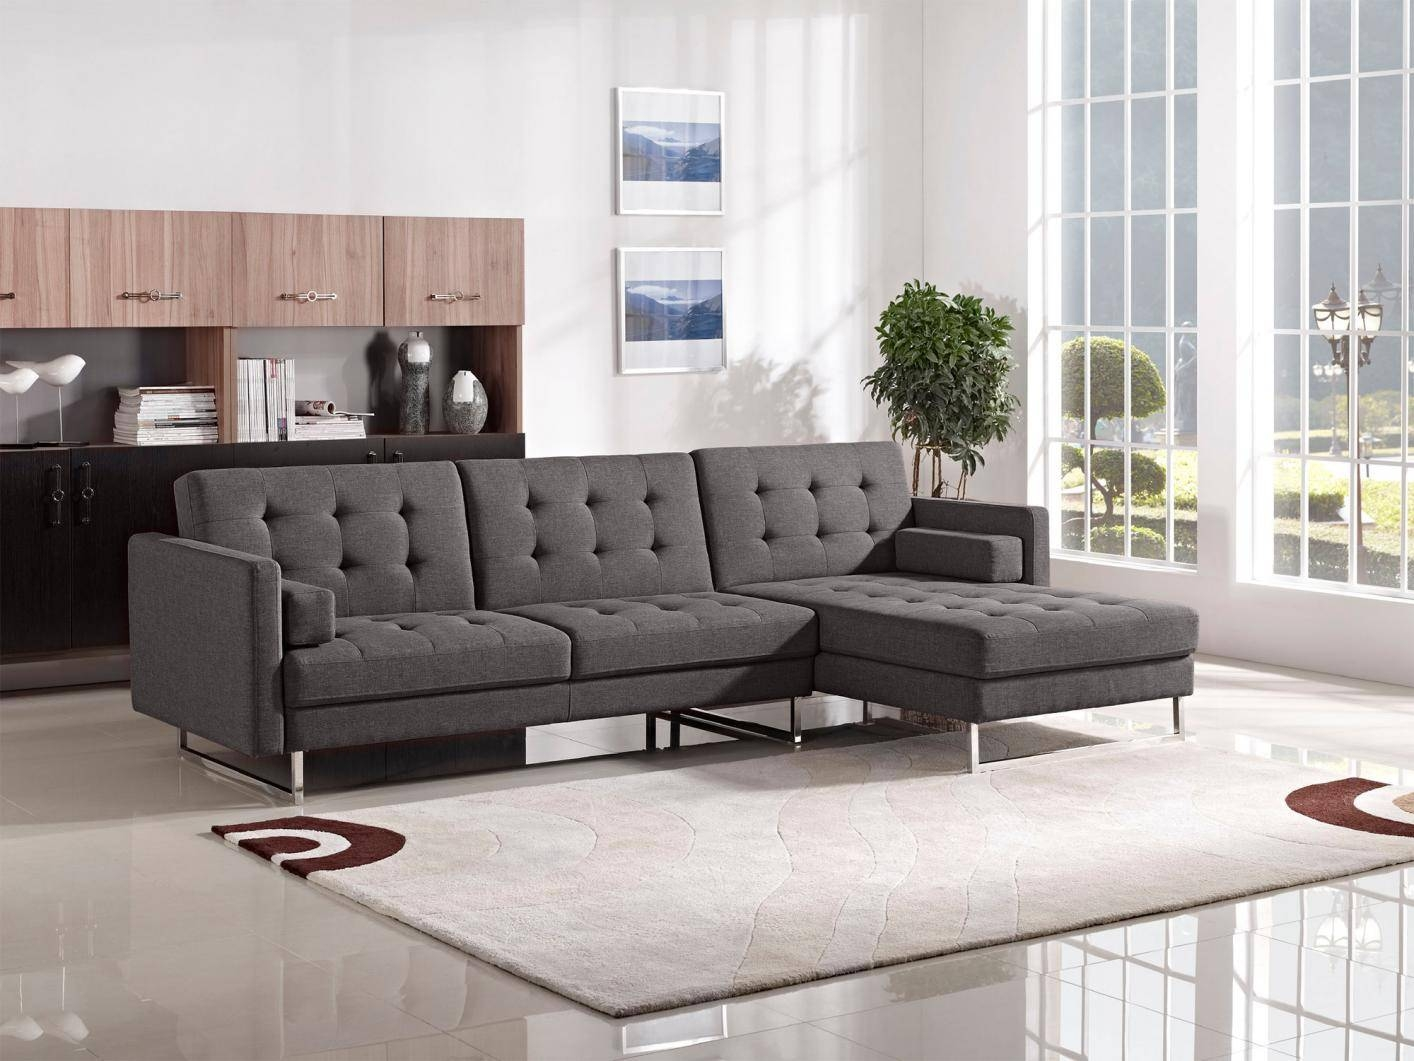 Opus Grey Fabric Sectional Sofa Bed - Steal-A-Sofa Furniture with Cloth Sectional Sofas (Image 26 of 30)